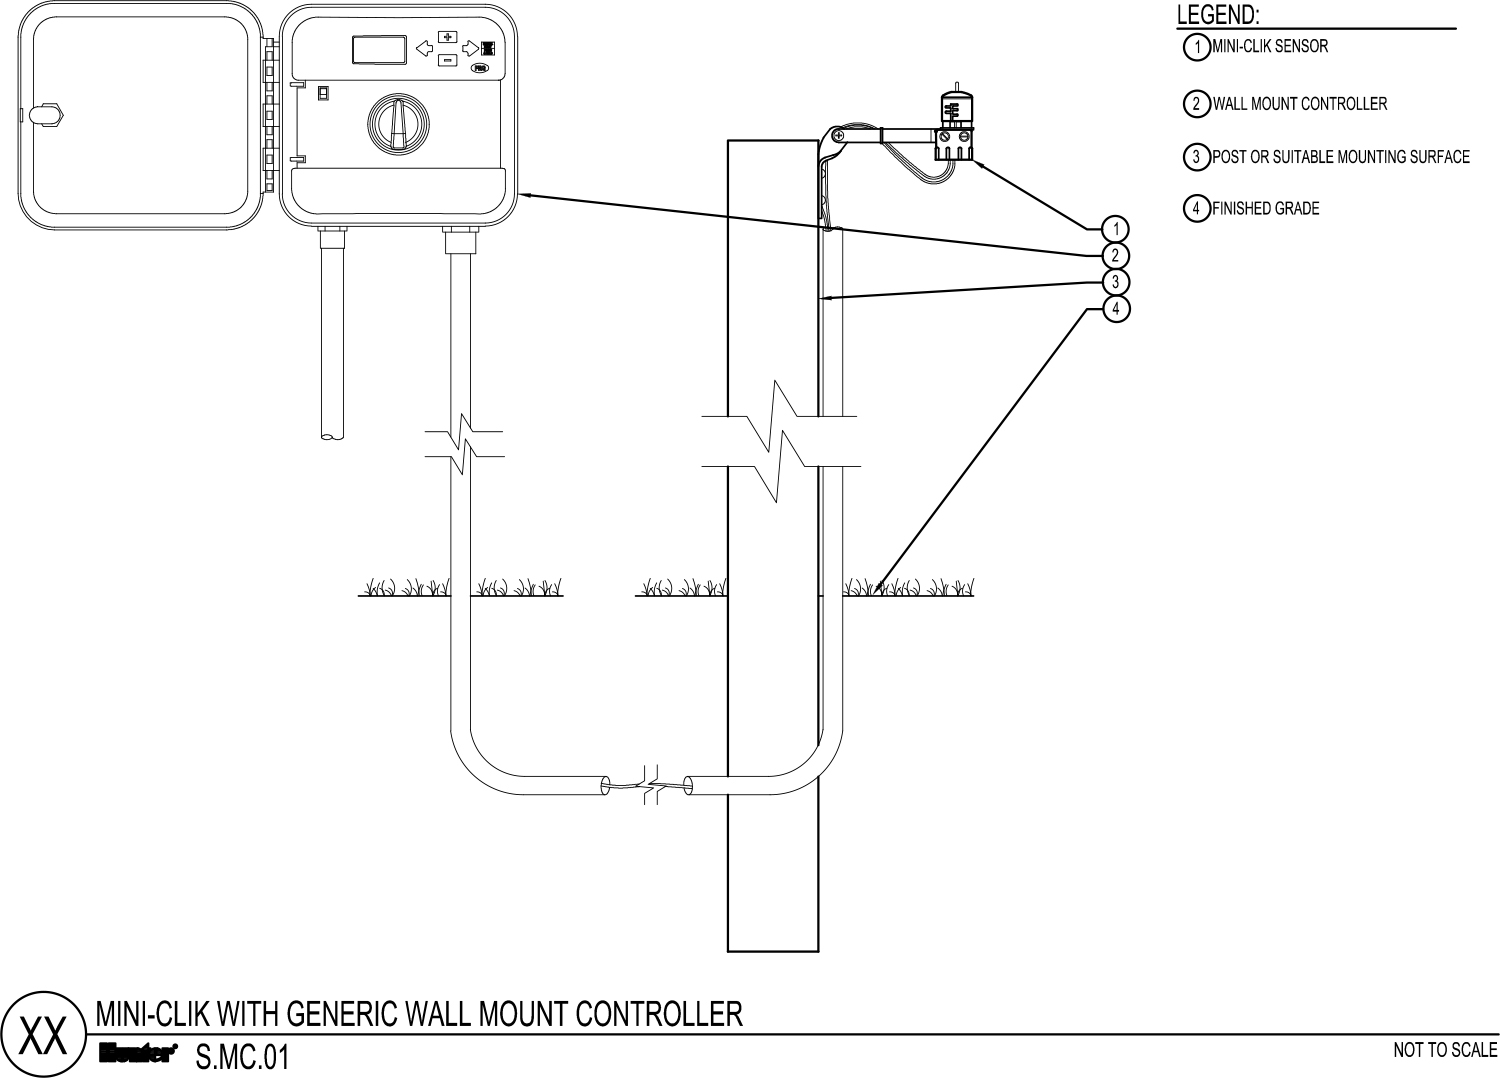 CAD - Mini Clik with Generic Wall Mount Controller